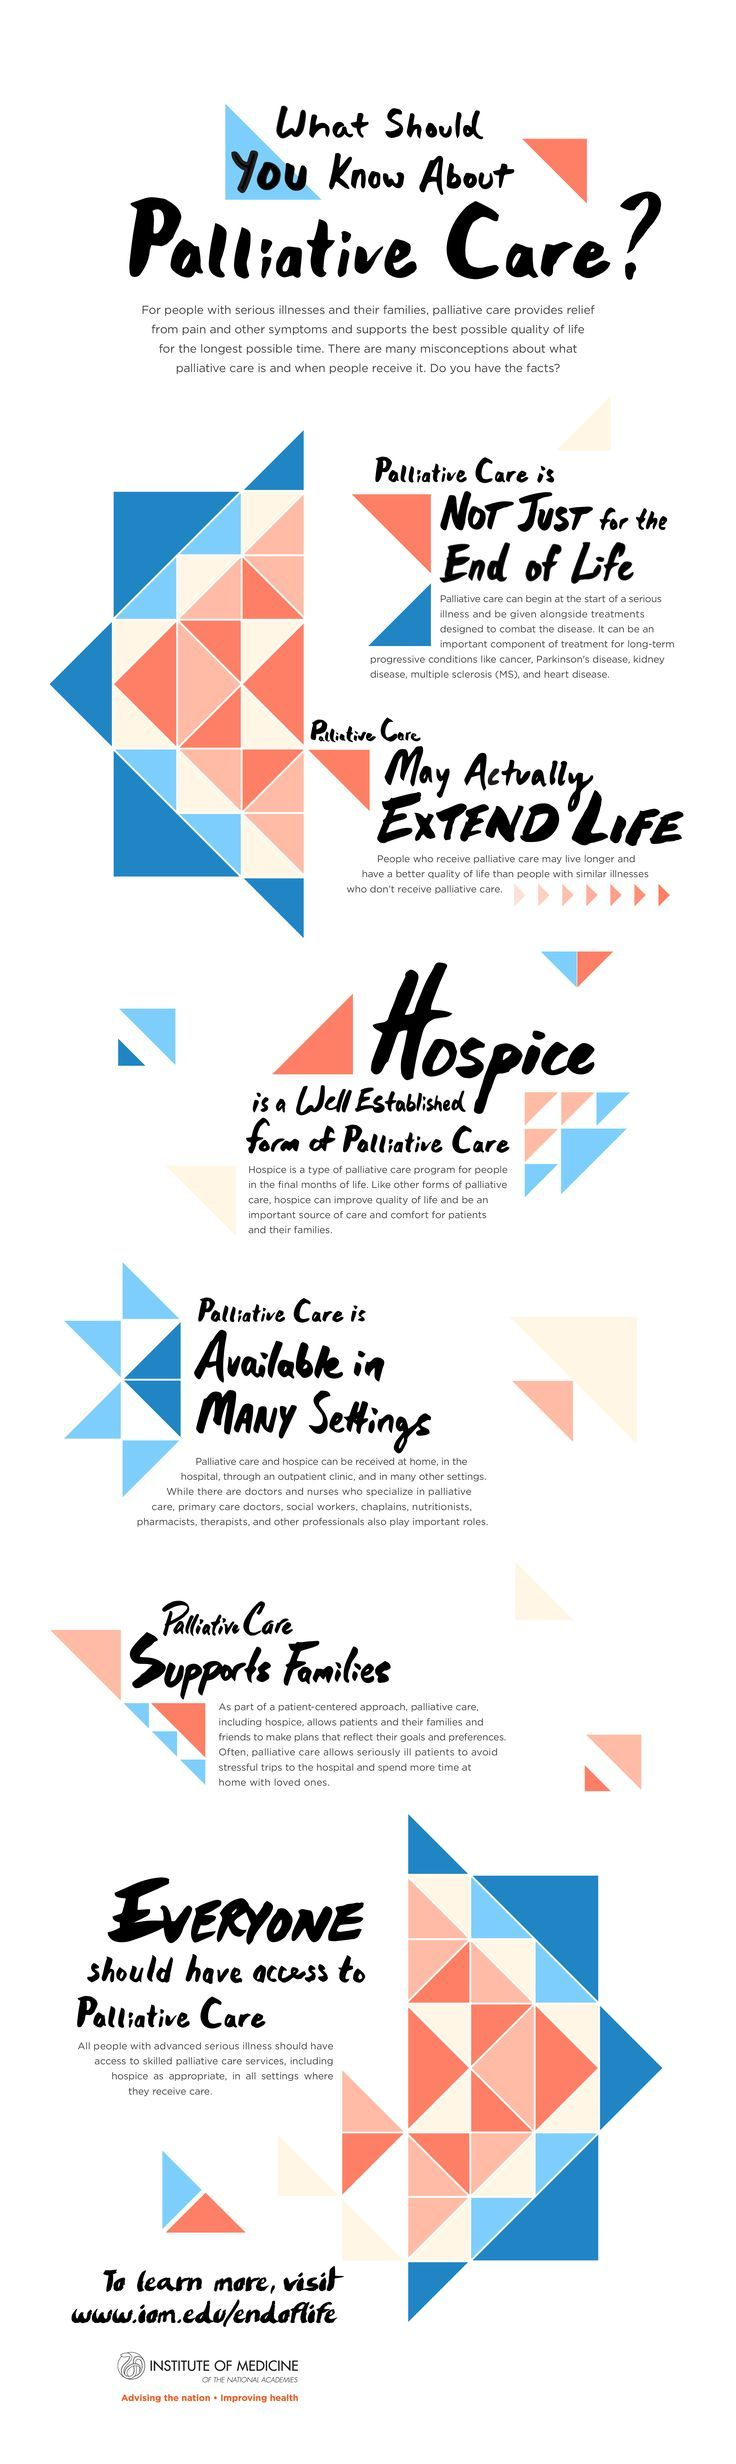 Infographic What Should You Know About Palliative Care Find Out